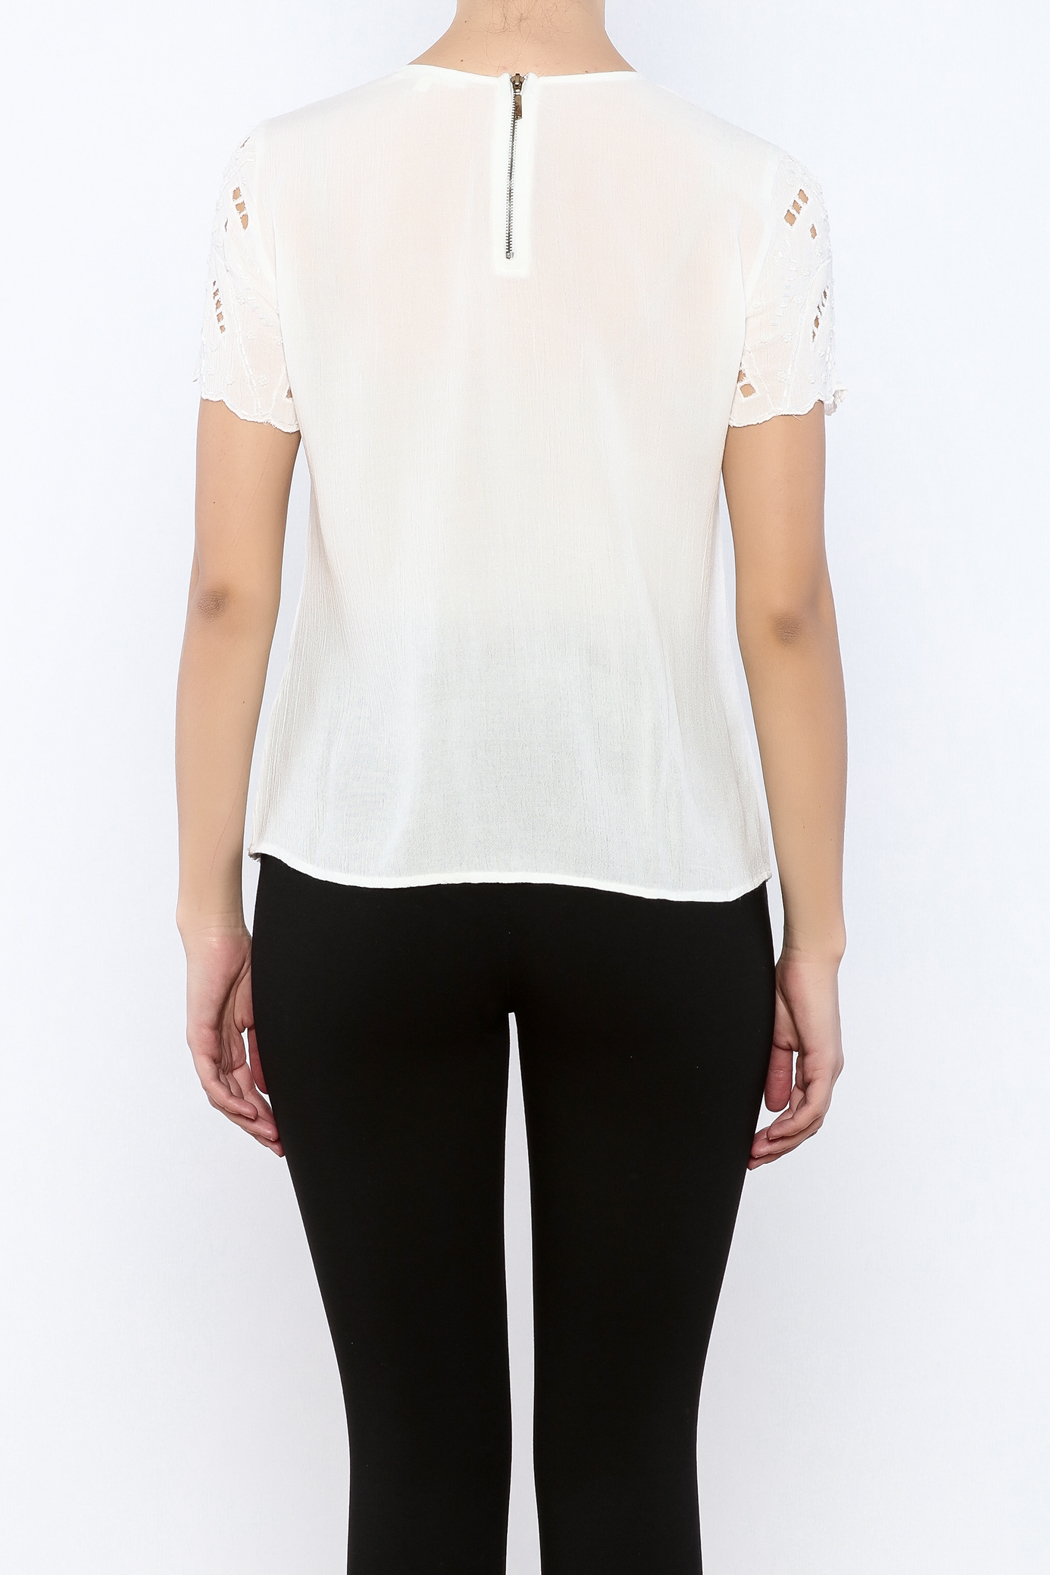 Willow & Clay Ivory Embellished Top - Back Cropped Image